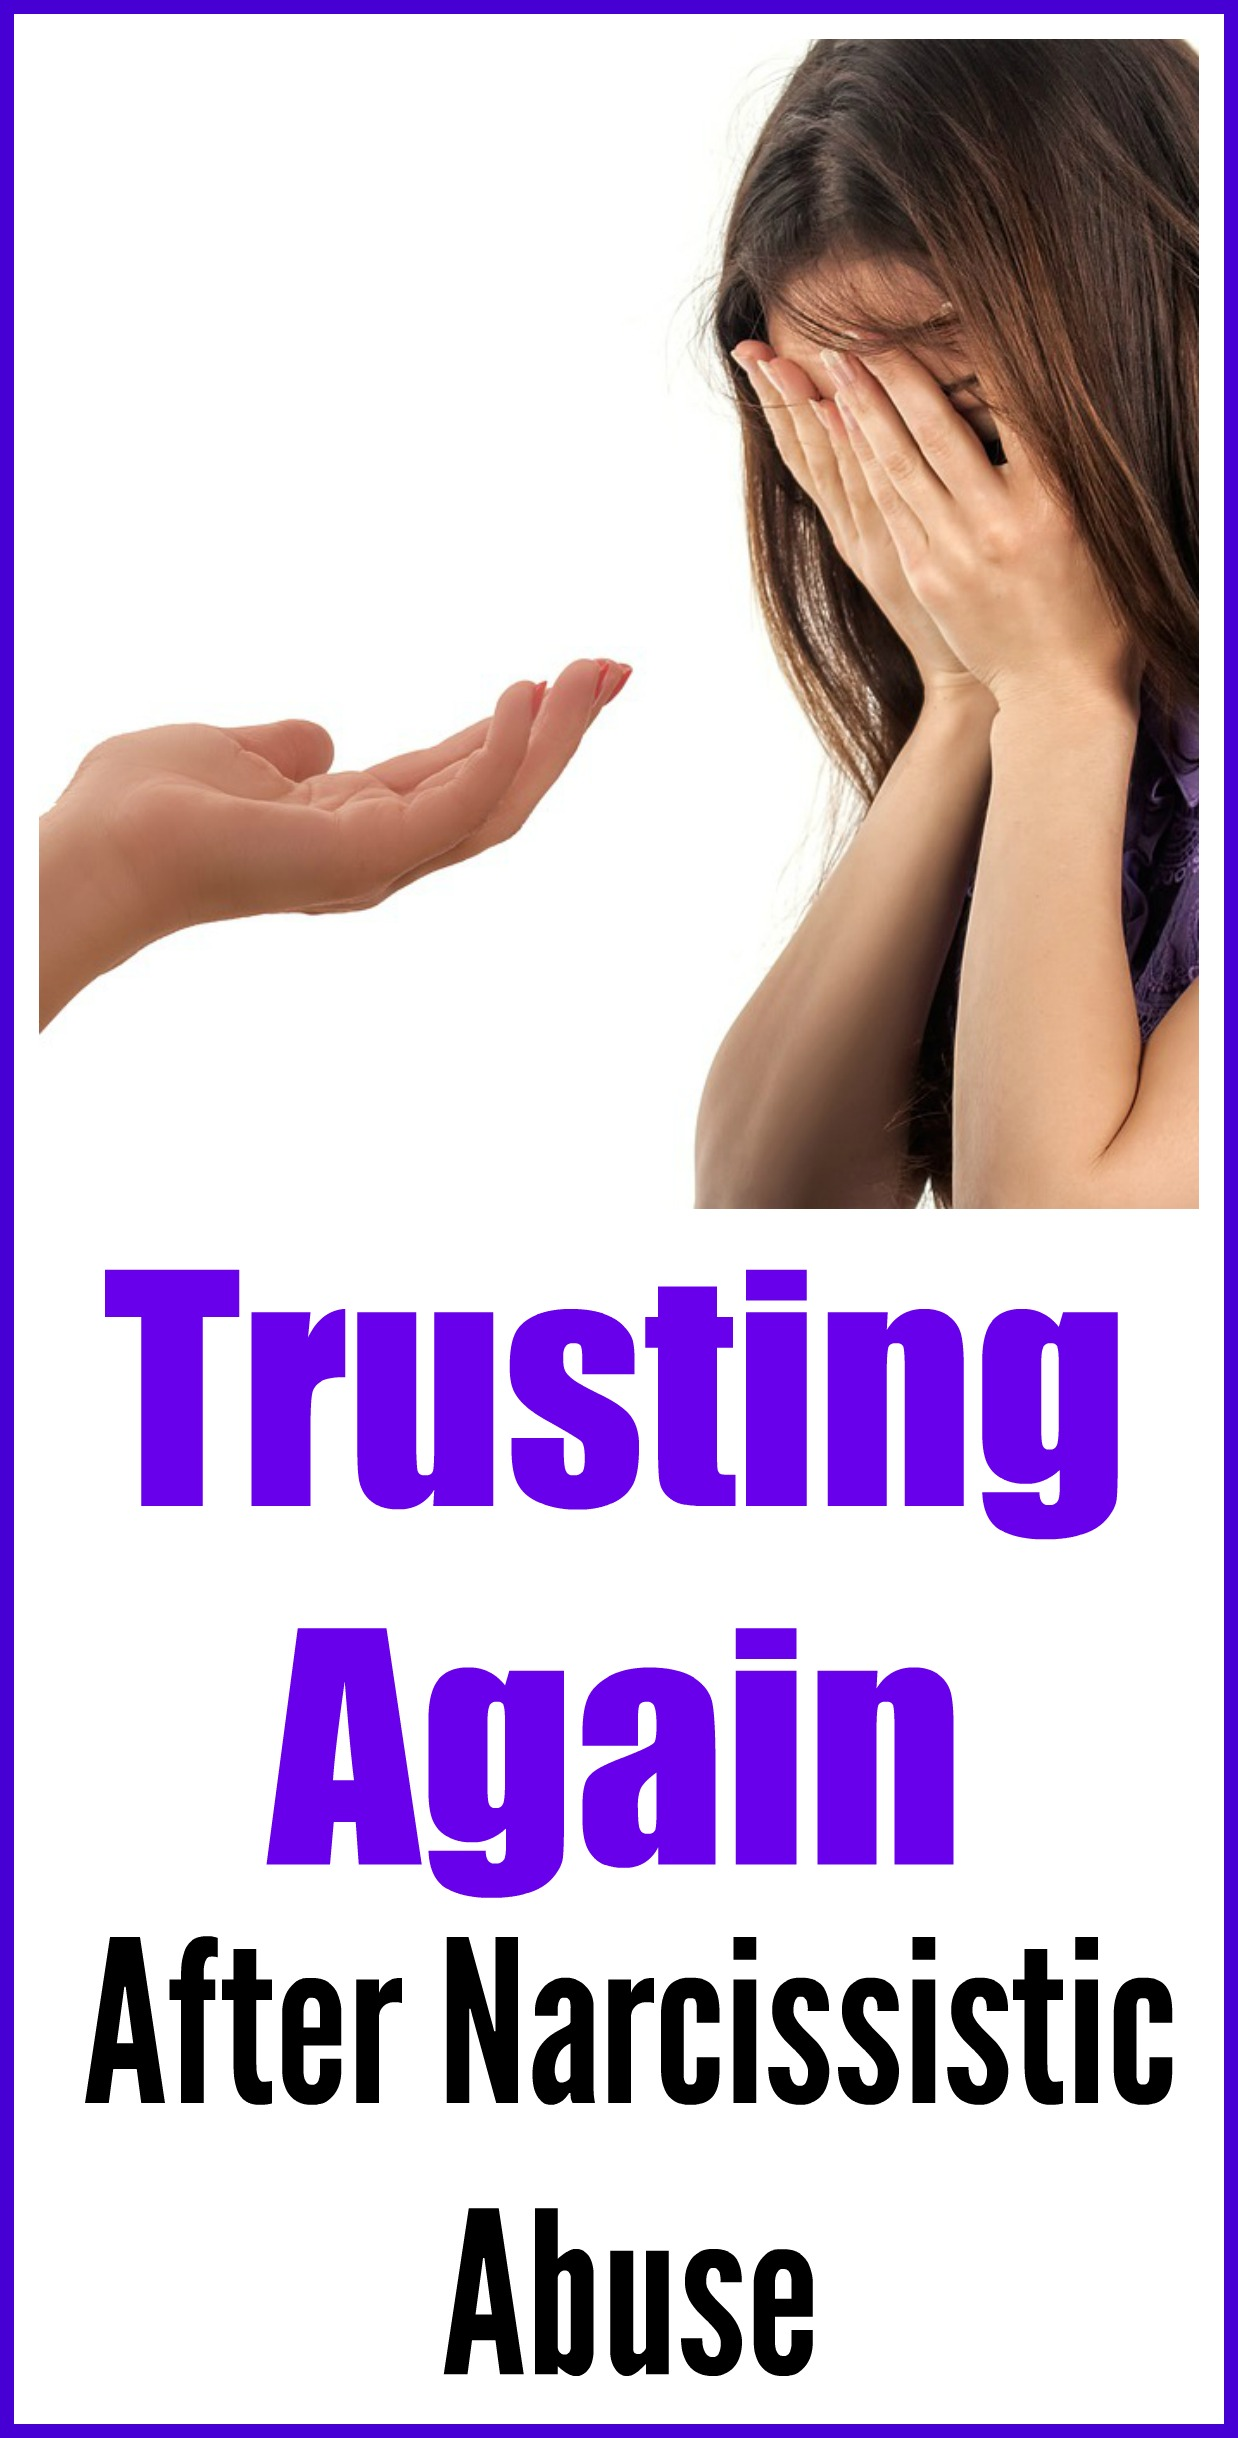 Trusting again after narcissistic abuse